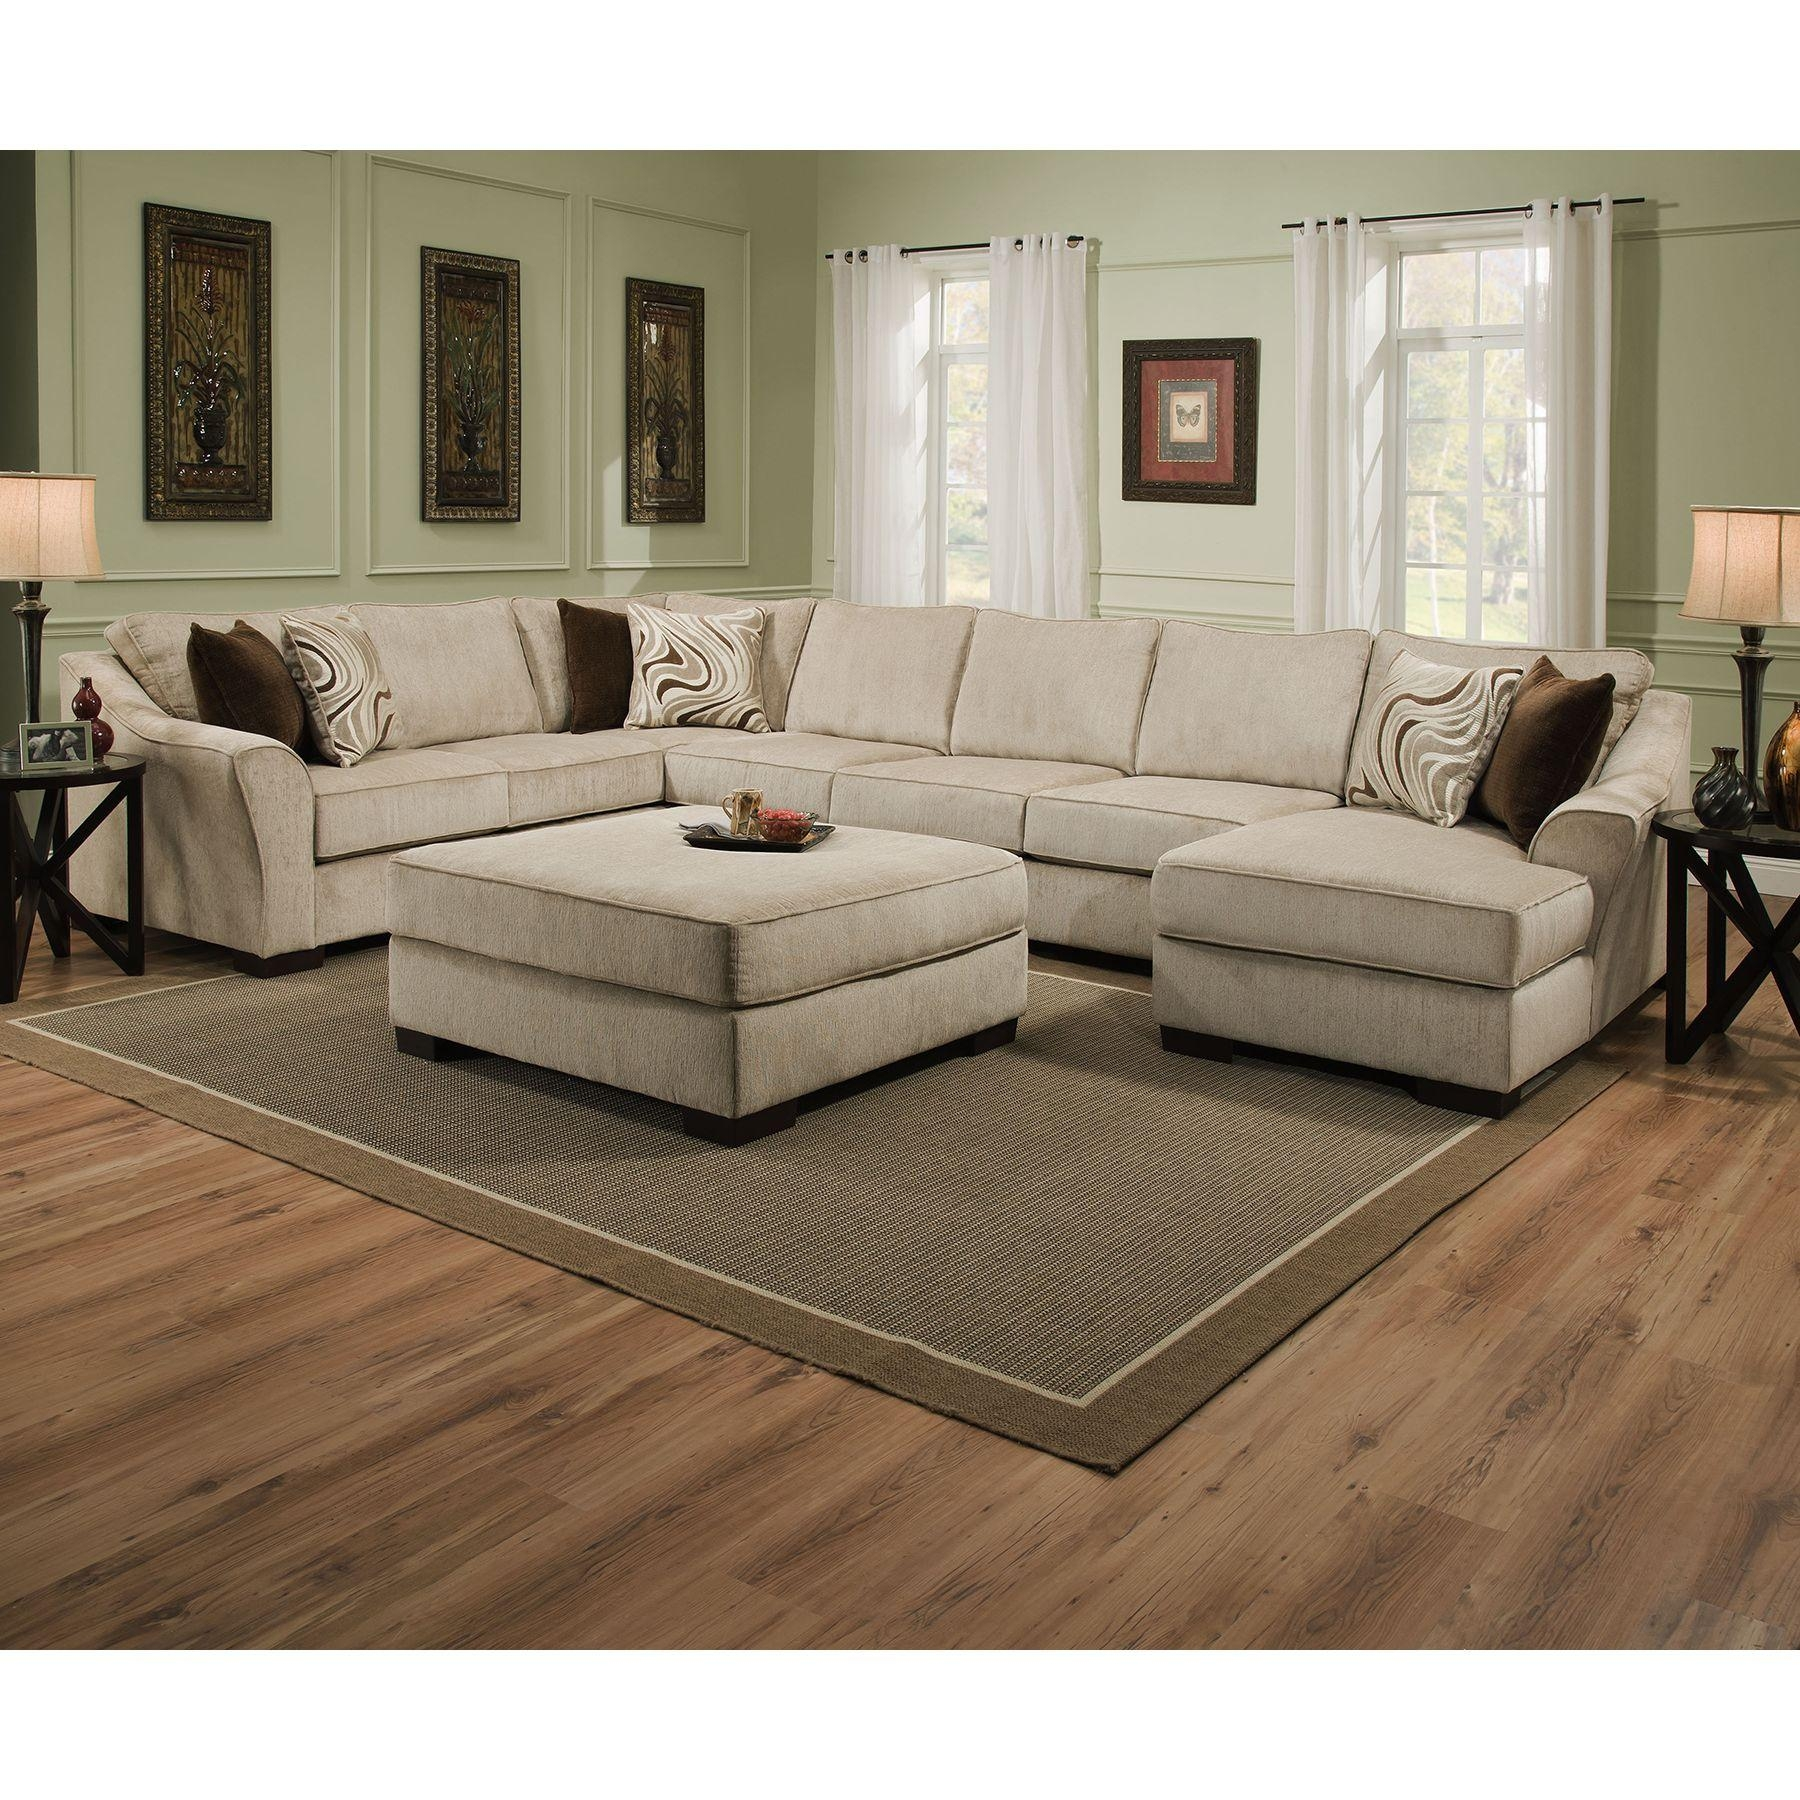 Comfortable Chaise Sofa 20 Best Large Comfortable Sectional Sofas Sofa Ideas